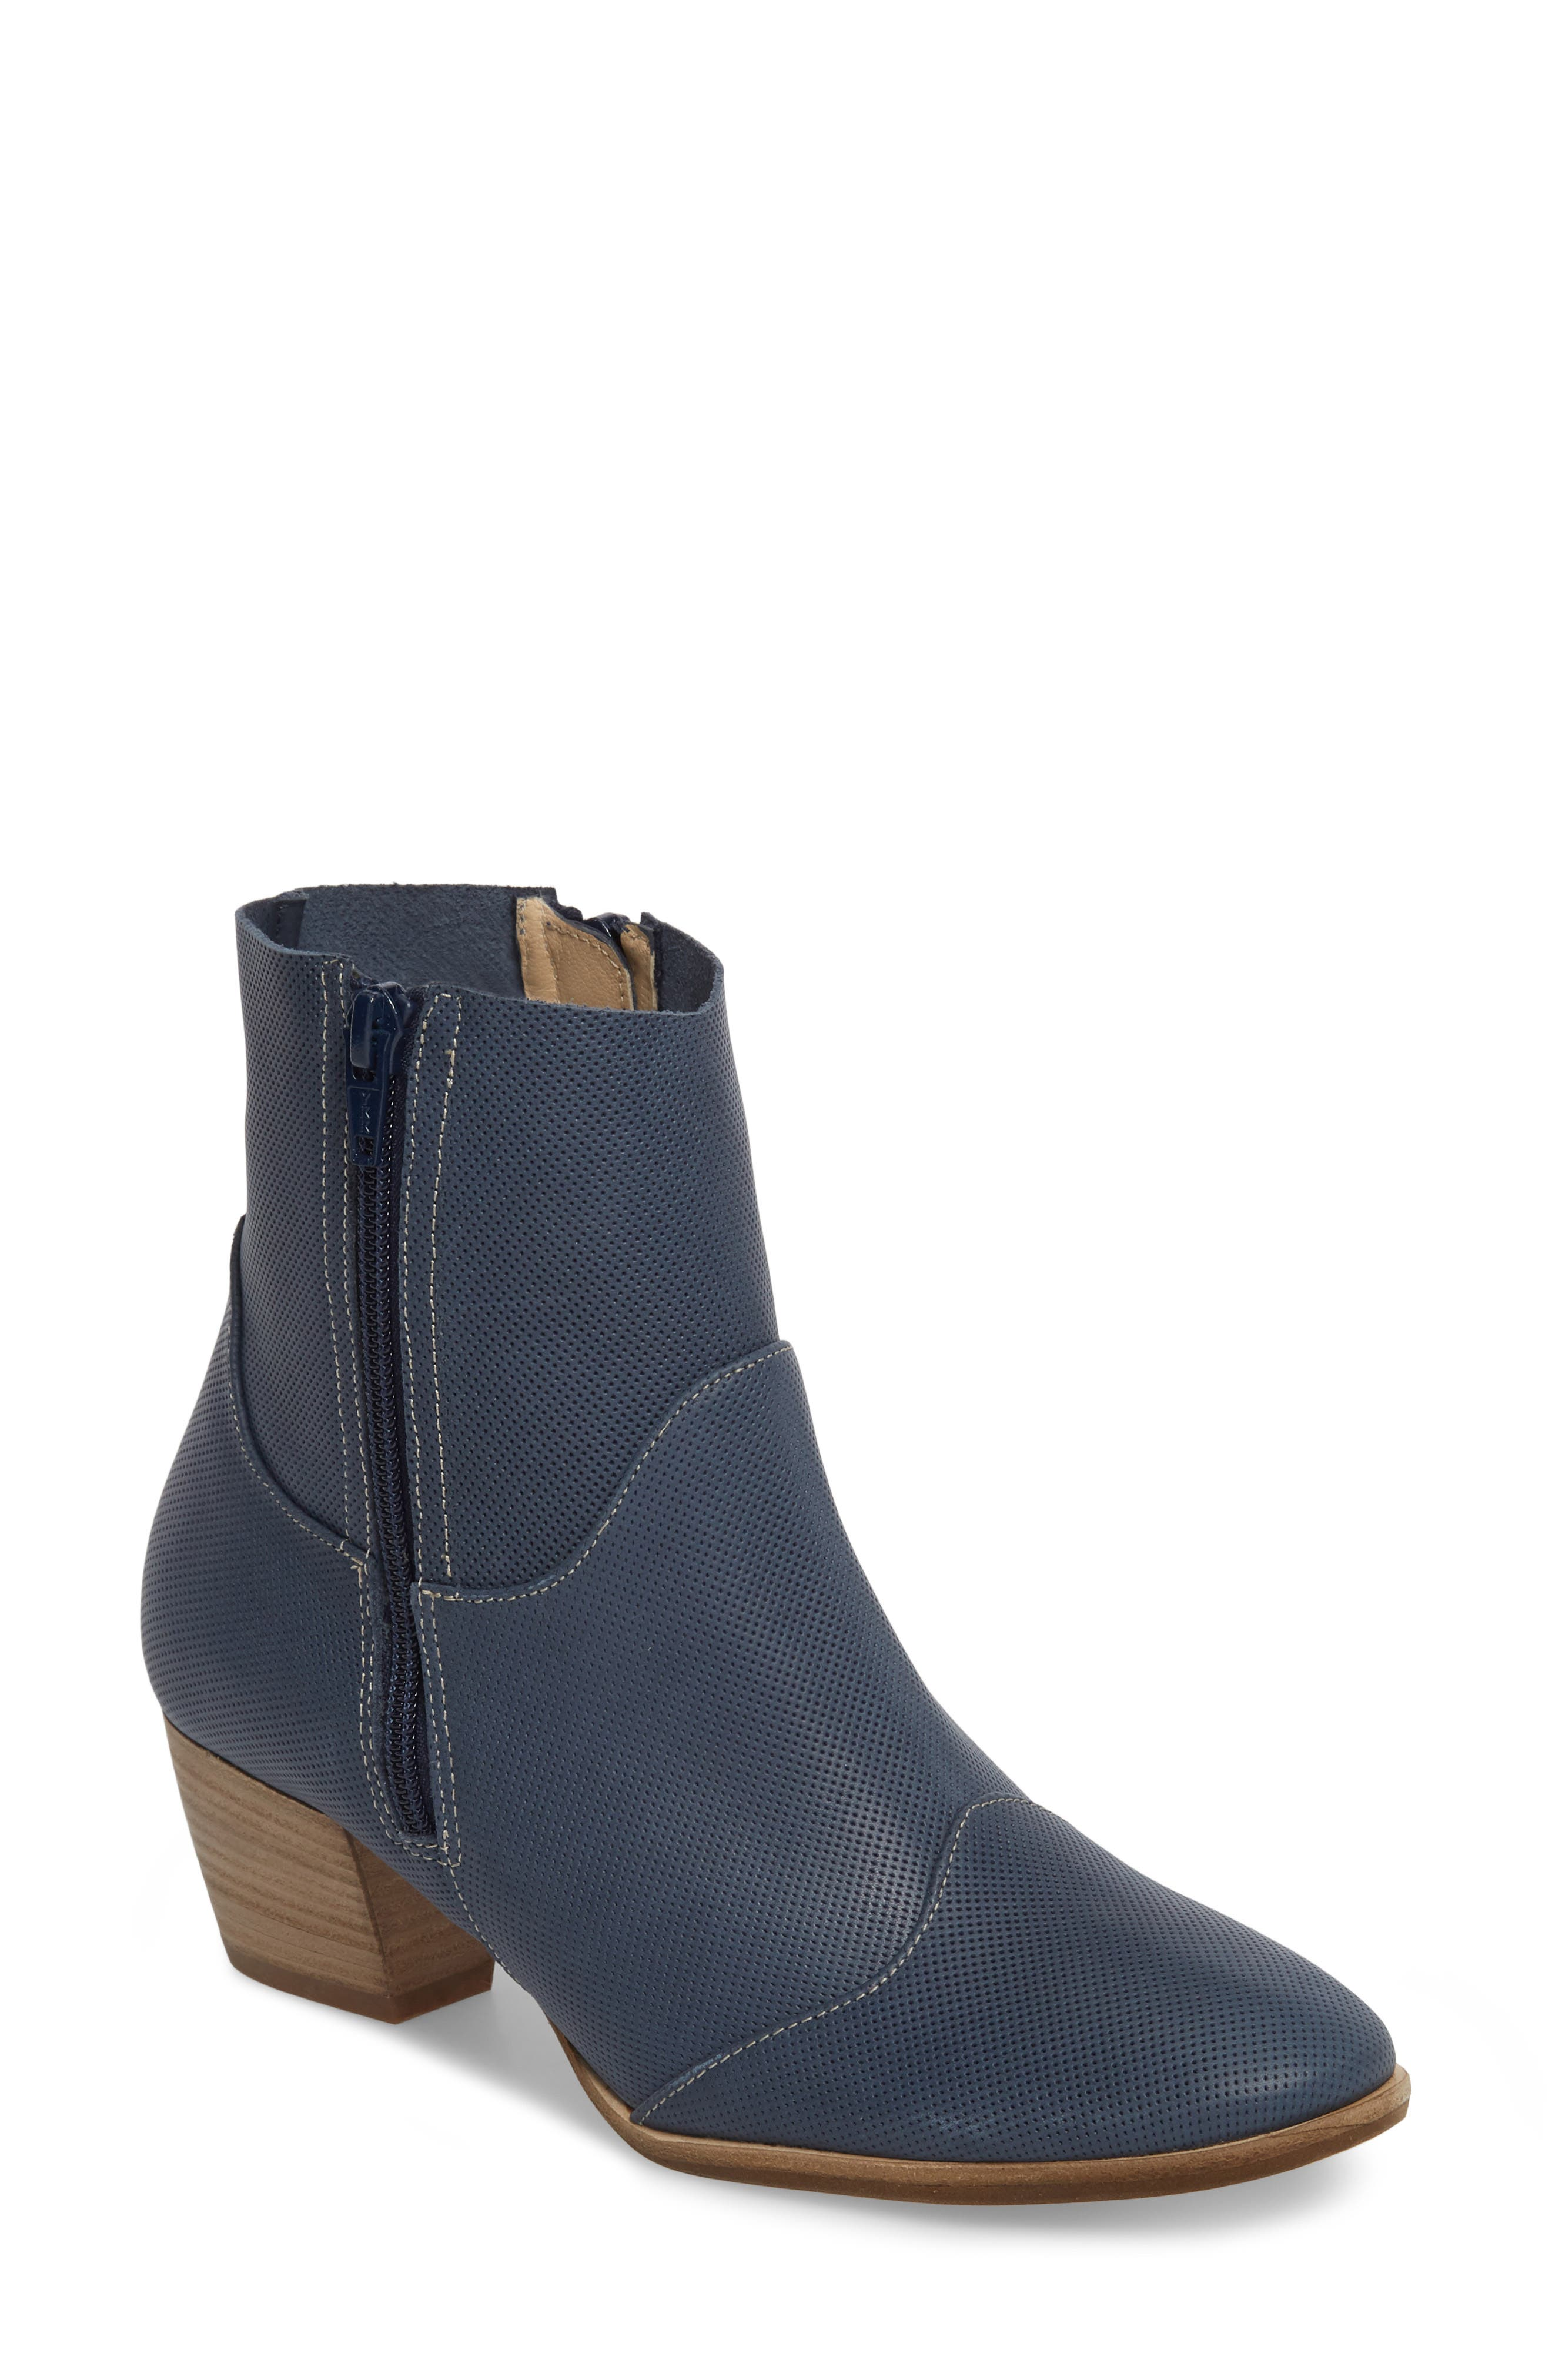 AMALFI BY RANGONI Robin Bootie in Blue Leather